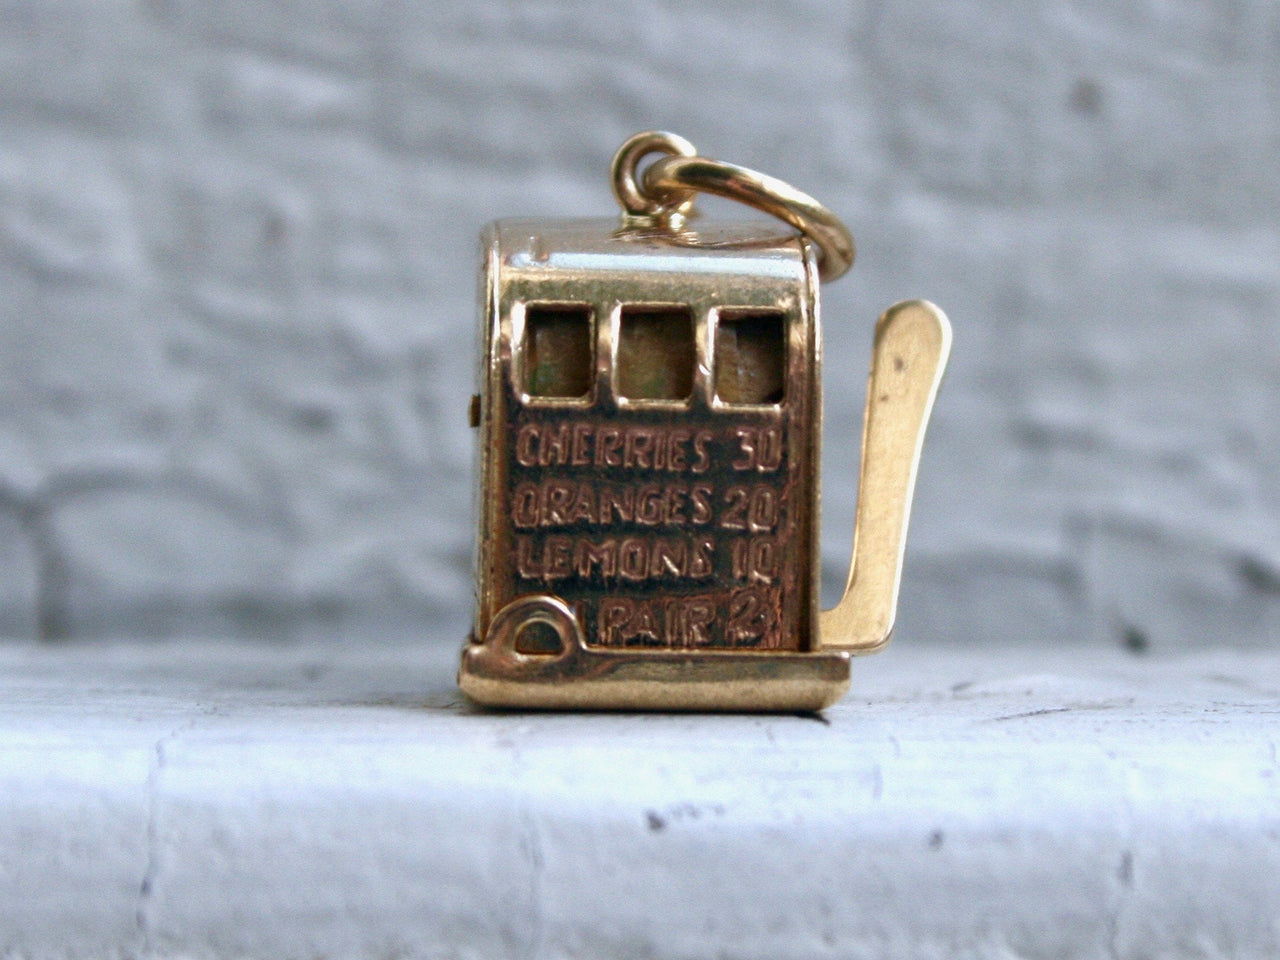 Vintage 14K Yellow Gold Slot Machine Charm/ Pendant.